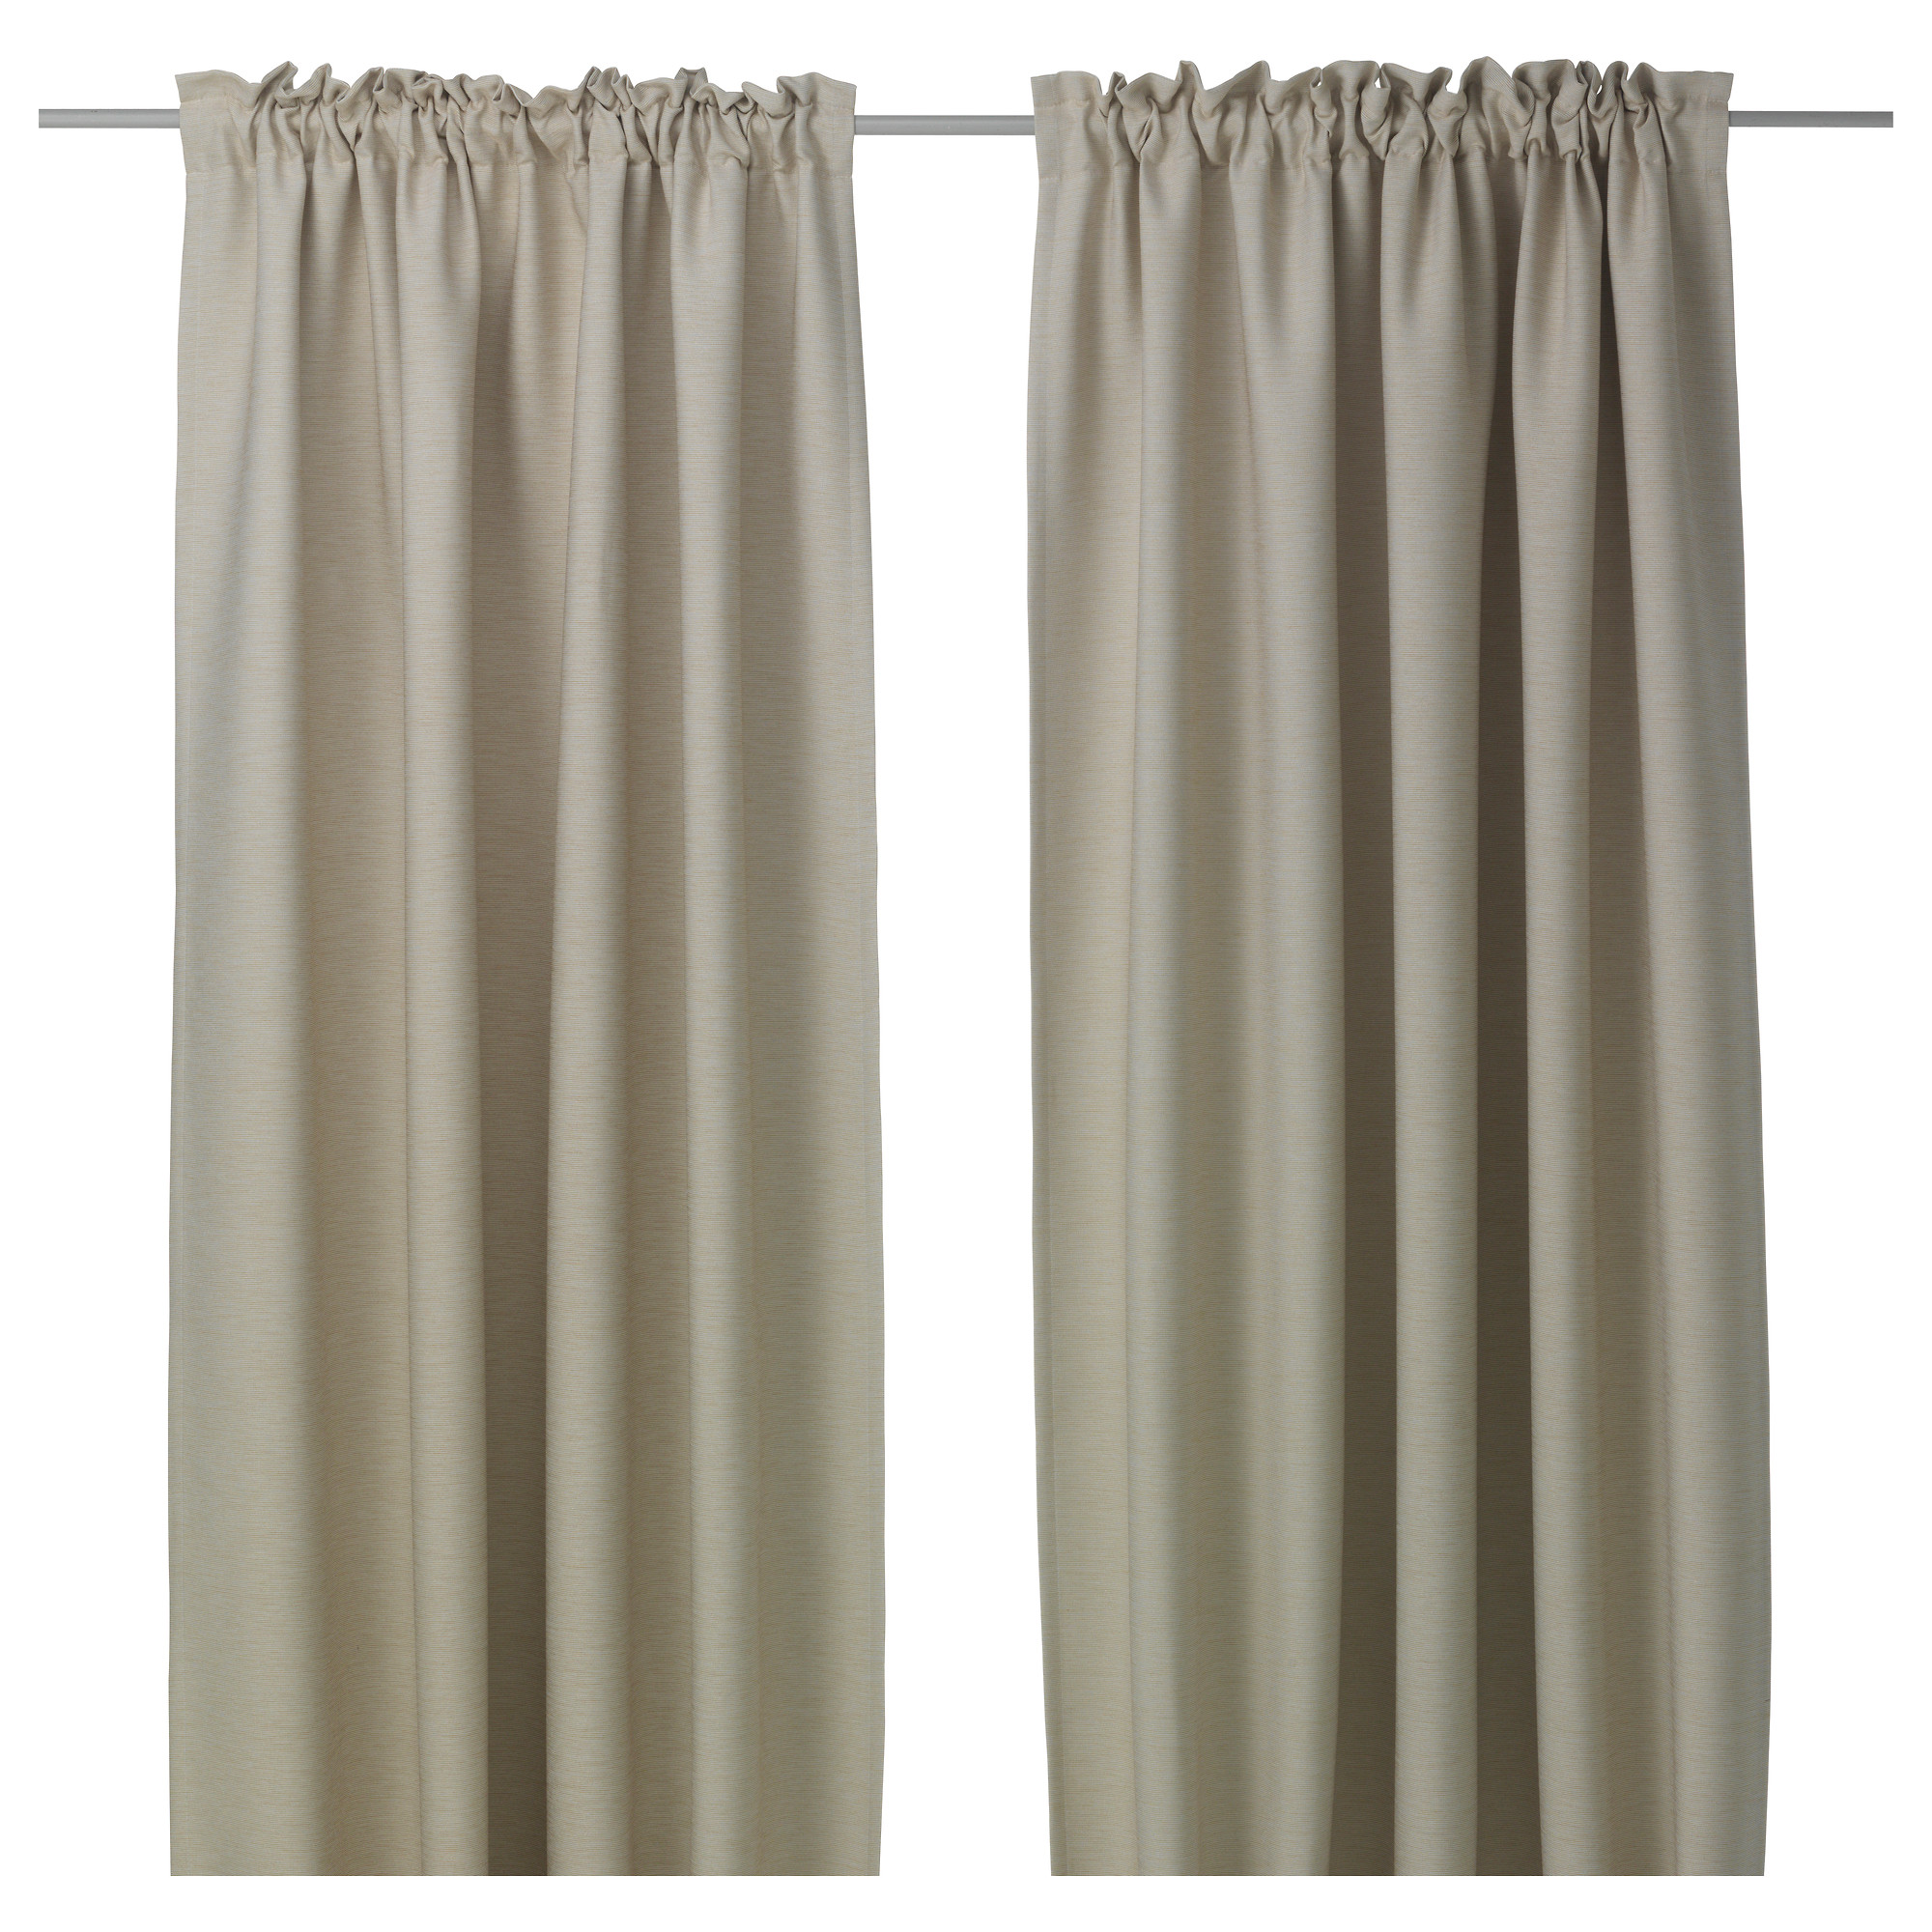 Cheap Blackout Curtains for Inspiring Home Decorating Ideas: Cheap Blackout Curtains | Blackout Curtains Cheap | Low Priced Curtains